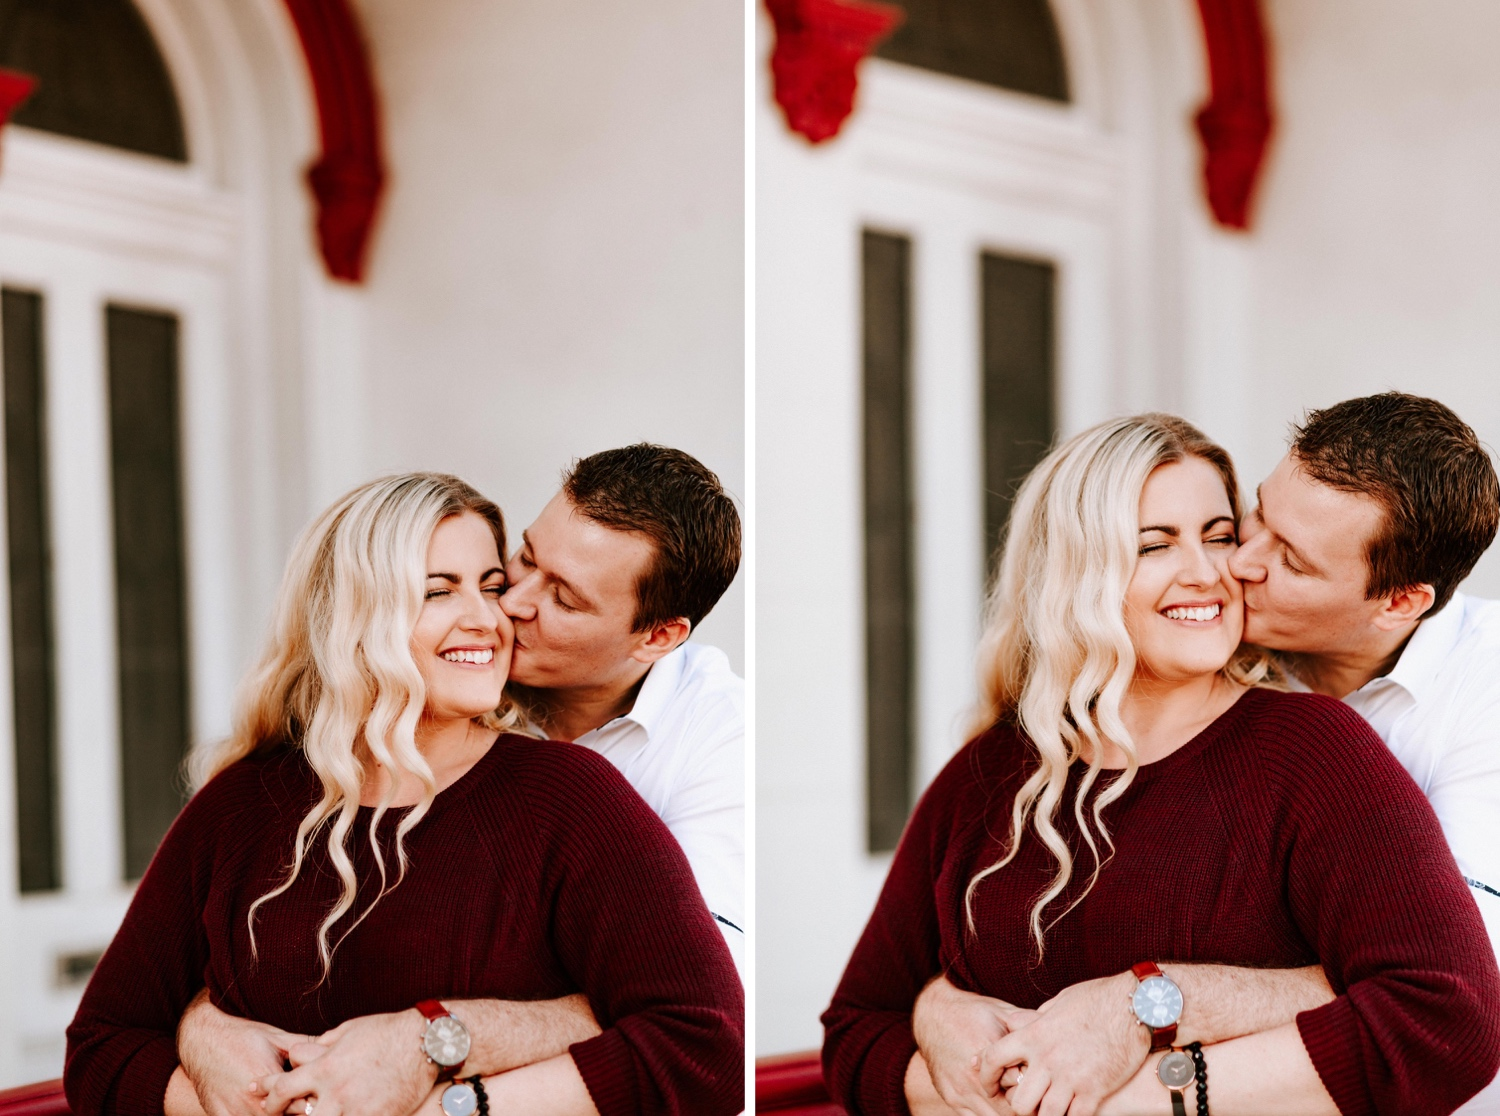 20_Gaby_Andy_Couples_Session_Finals-128_Gaby_Andy_Couples_Session_Finals-127.jpg